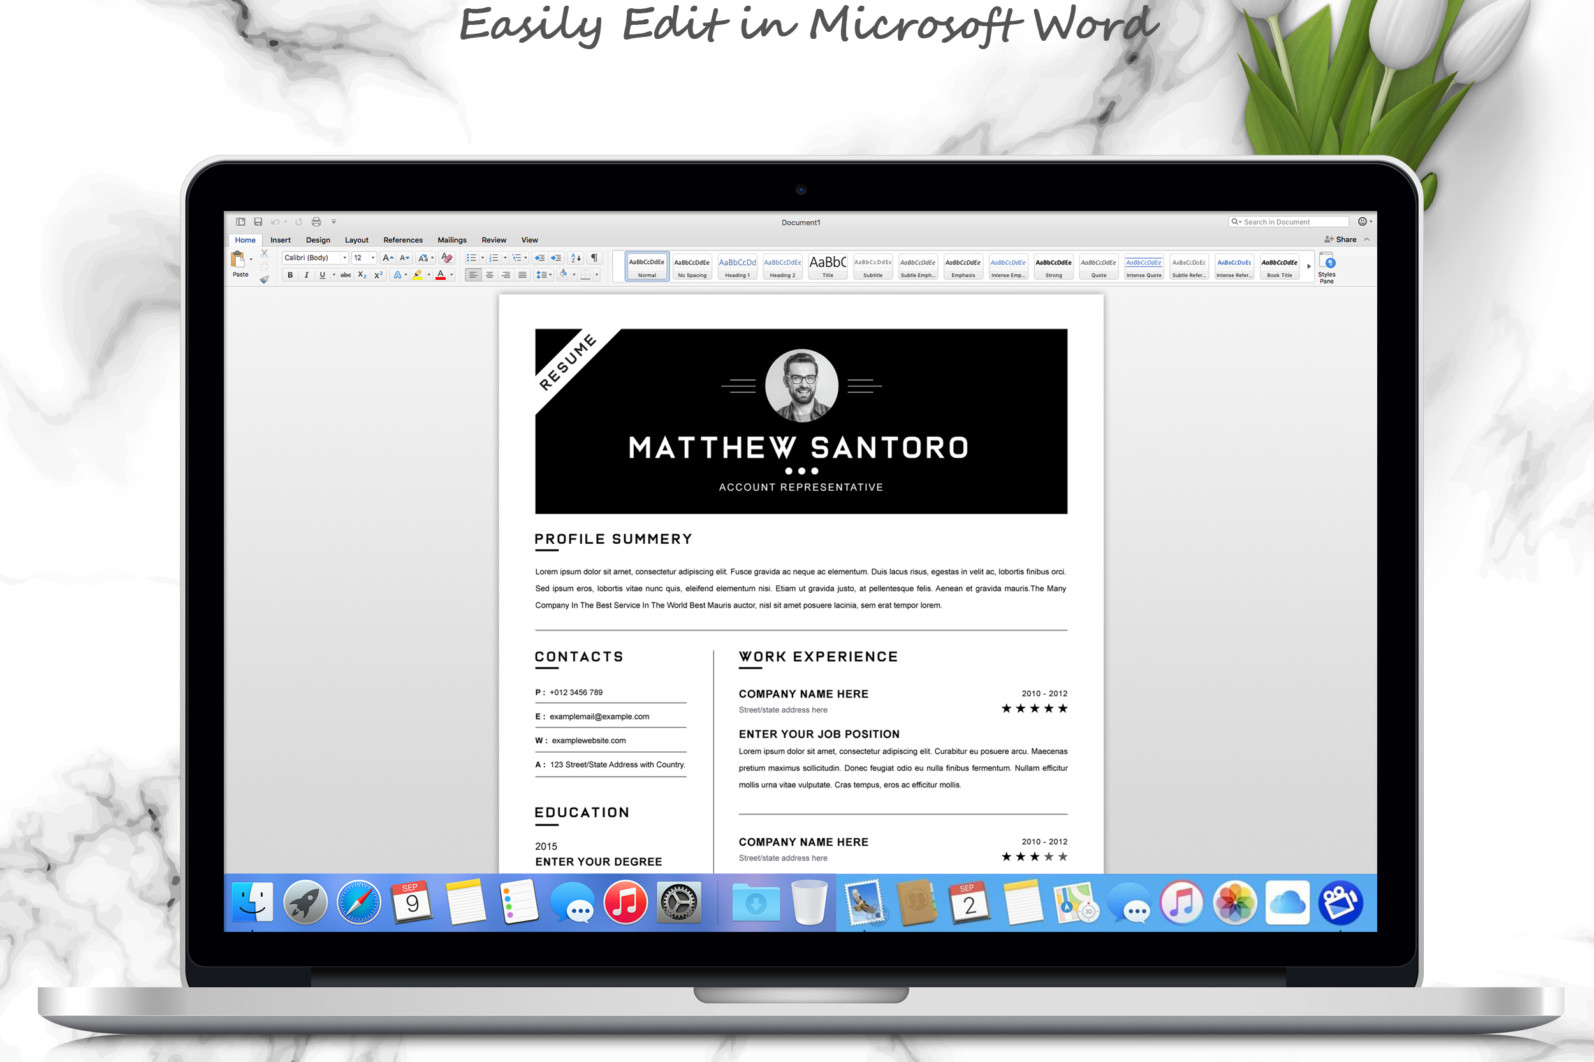 Simple Resume Design 2021 - 05 3 Pages Free Resume MS Word File Format Design Template 8 -